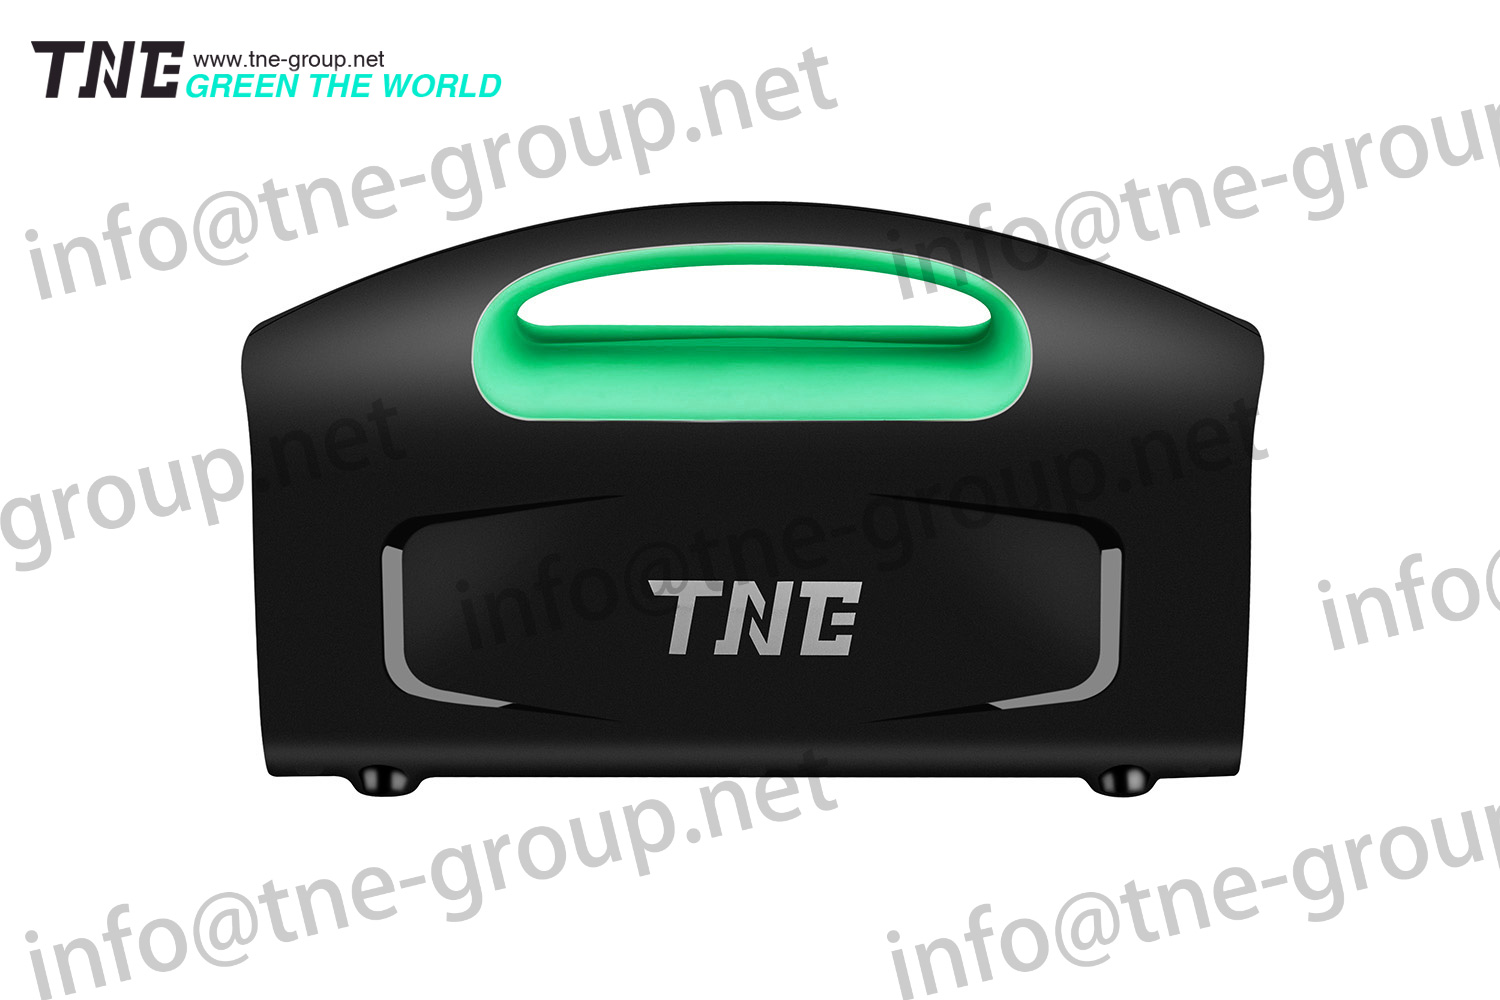 TNE Fast charging UPS Solar energy storage battery for home use